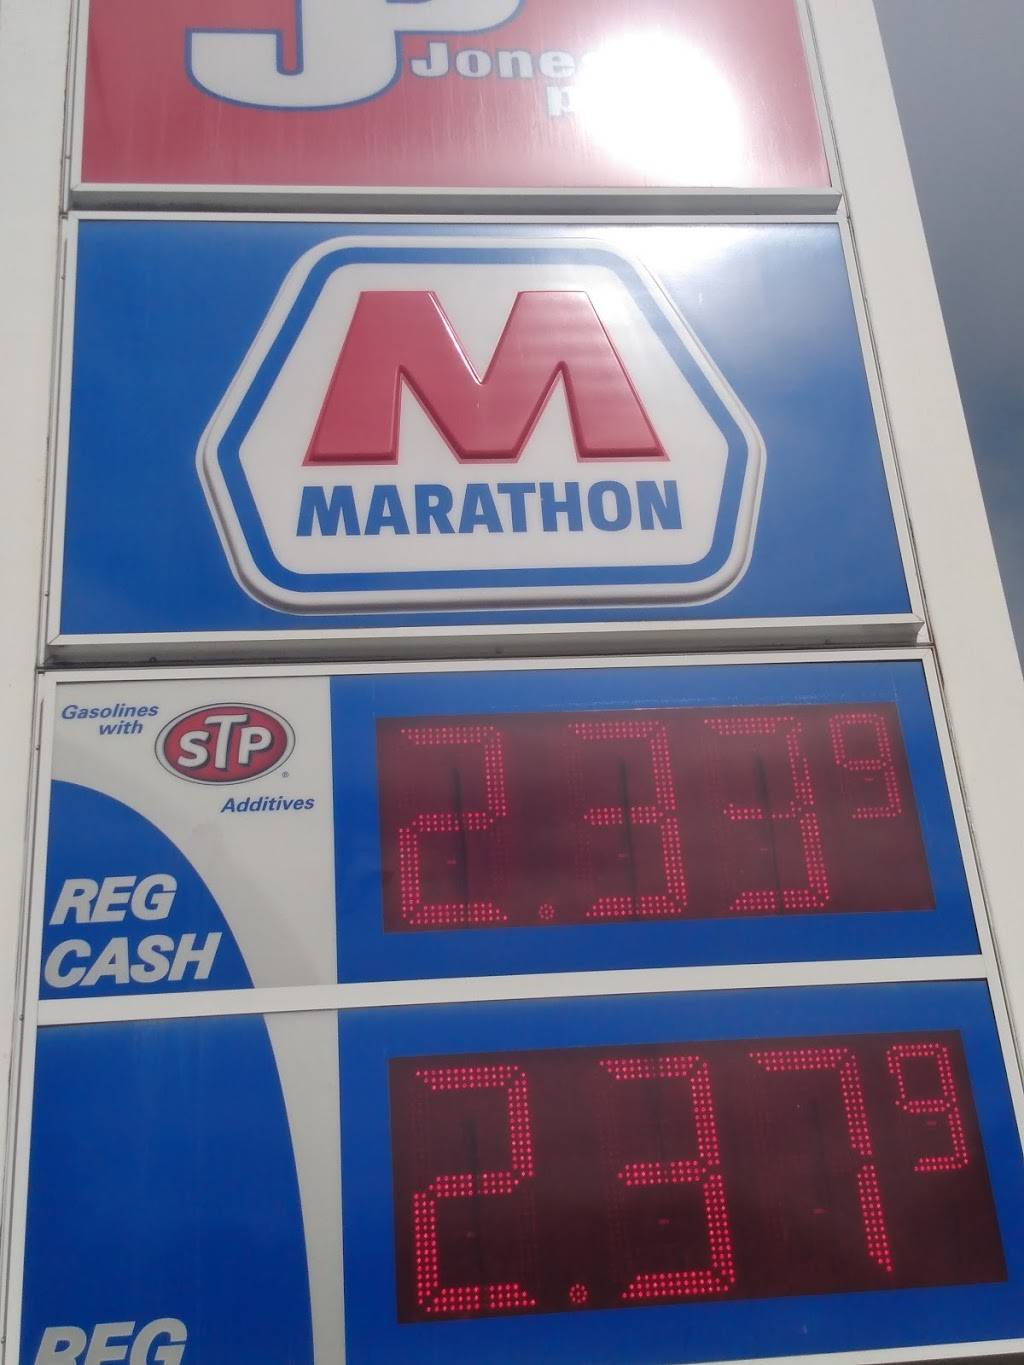 Marathon Gas - gas station  | Photo 5 of 10 | Address: 2588 Gresham Rd S E, Atlanta, GA 30316, USA | Phone: (404) 244-6016